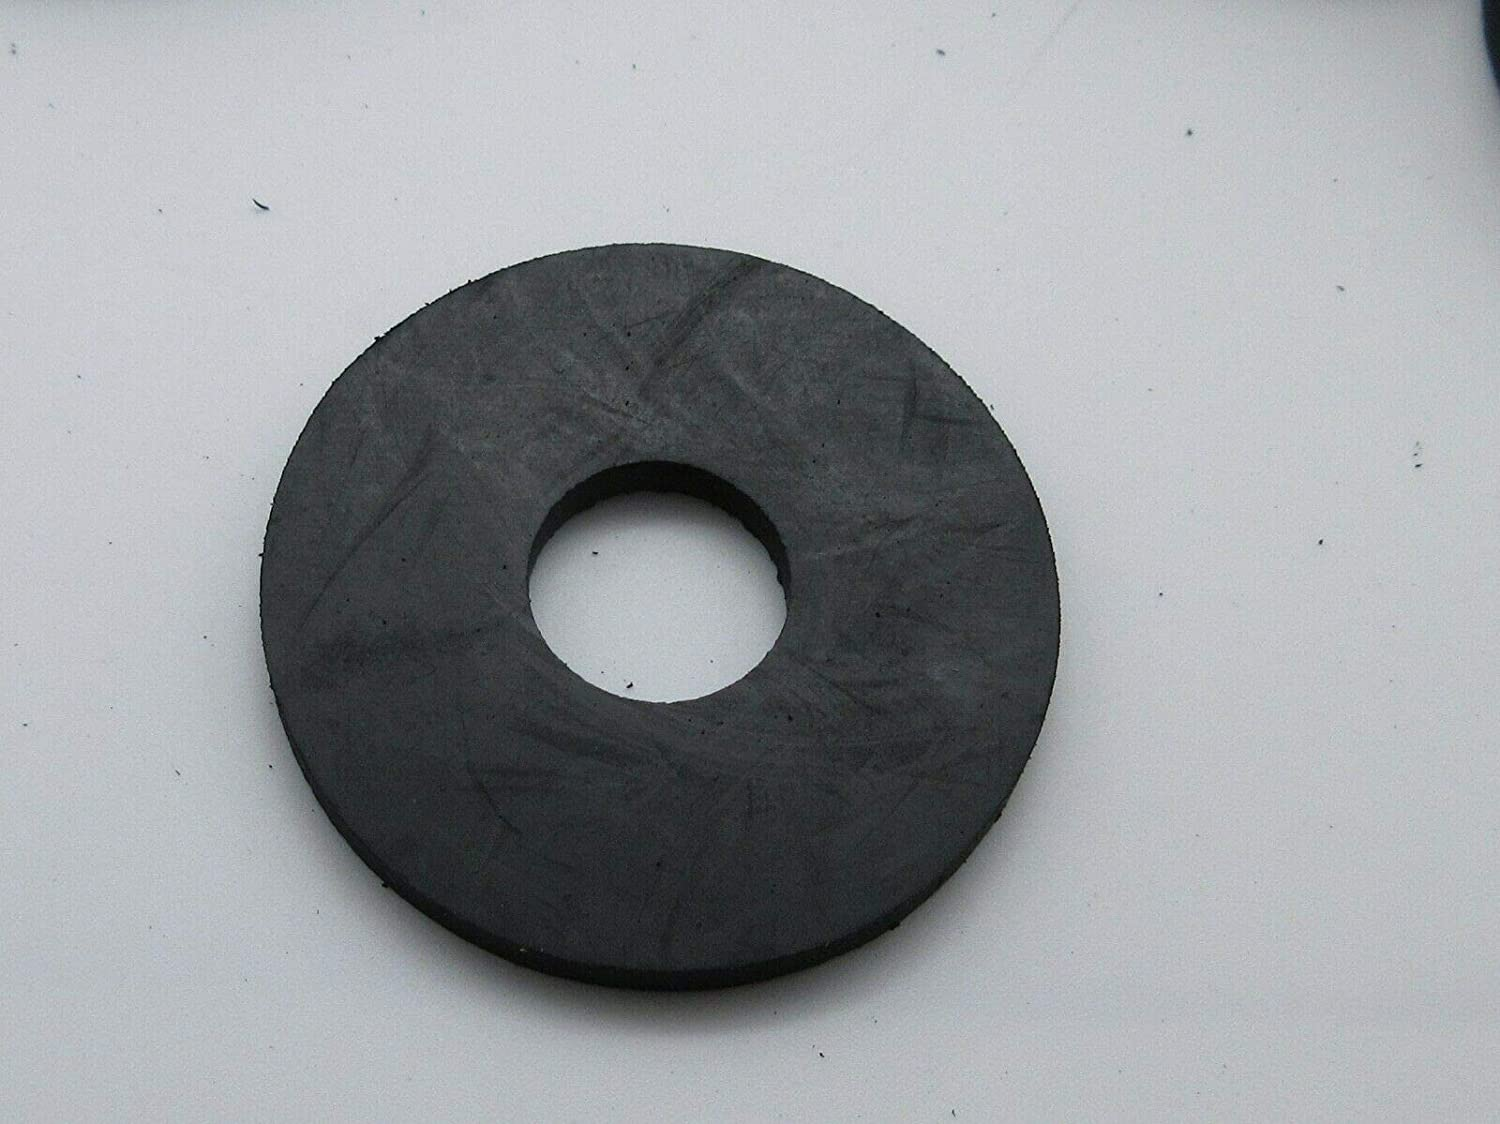 Rubber Washer 1 1//2 OD x 1//2 ID x 1//8 Thickness Black Large Flat Round 25